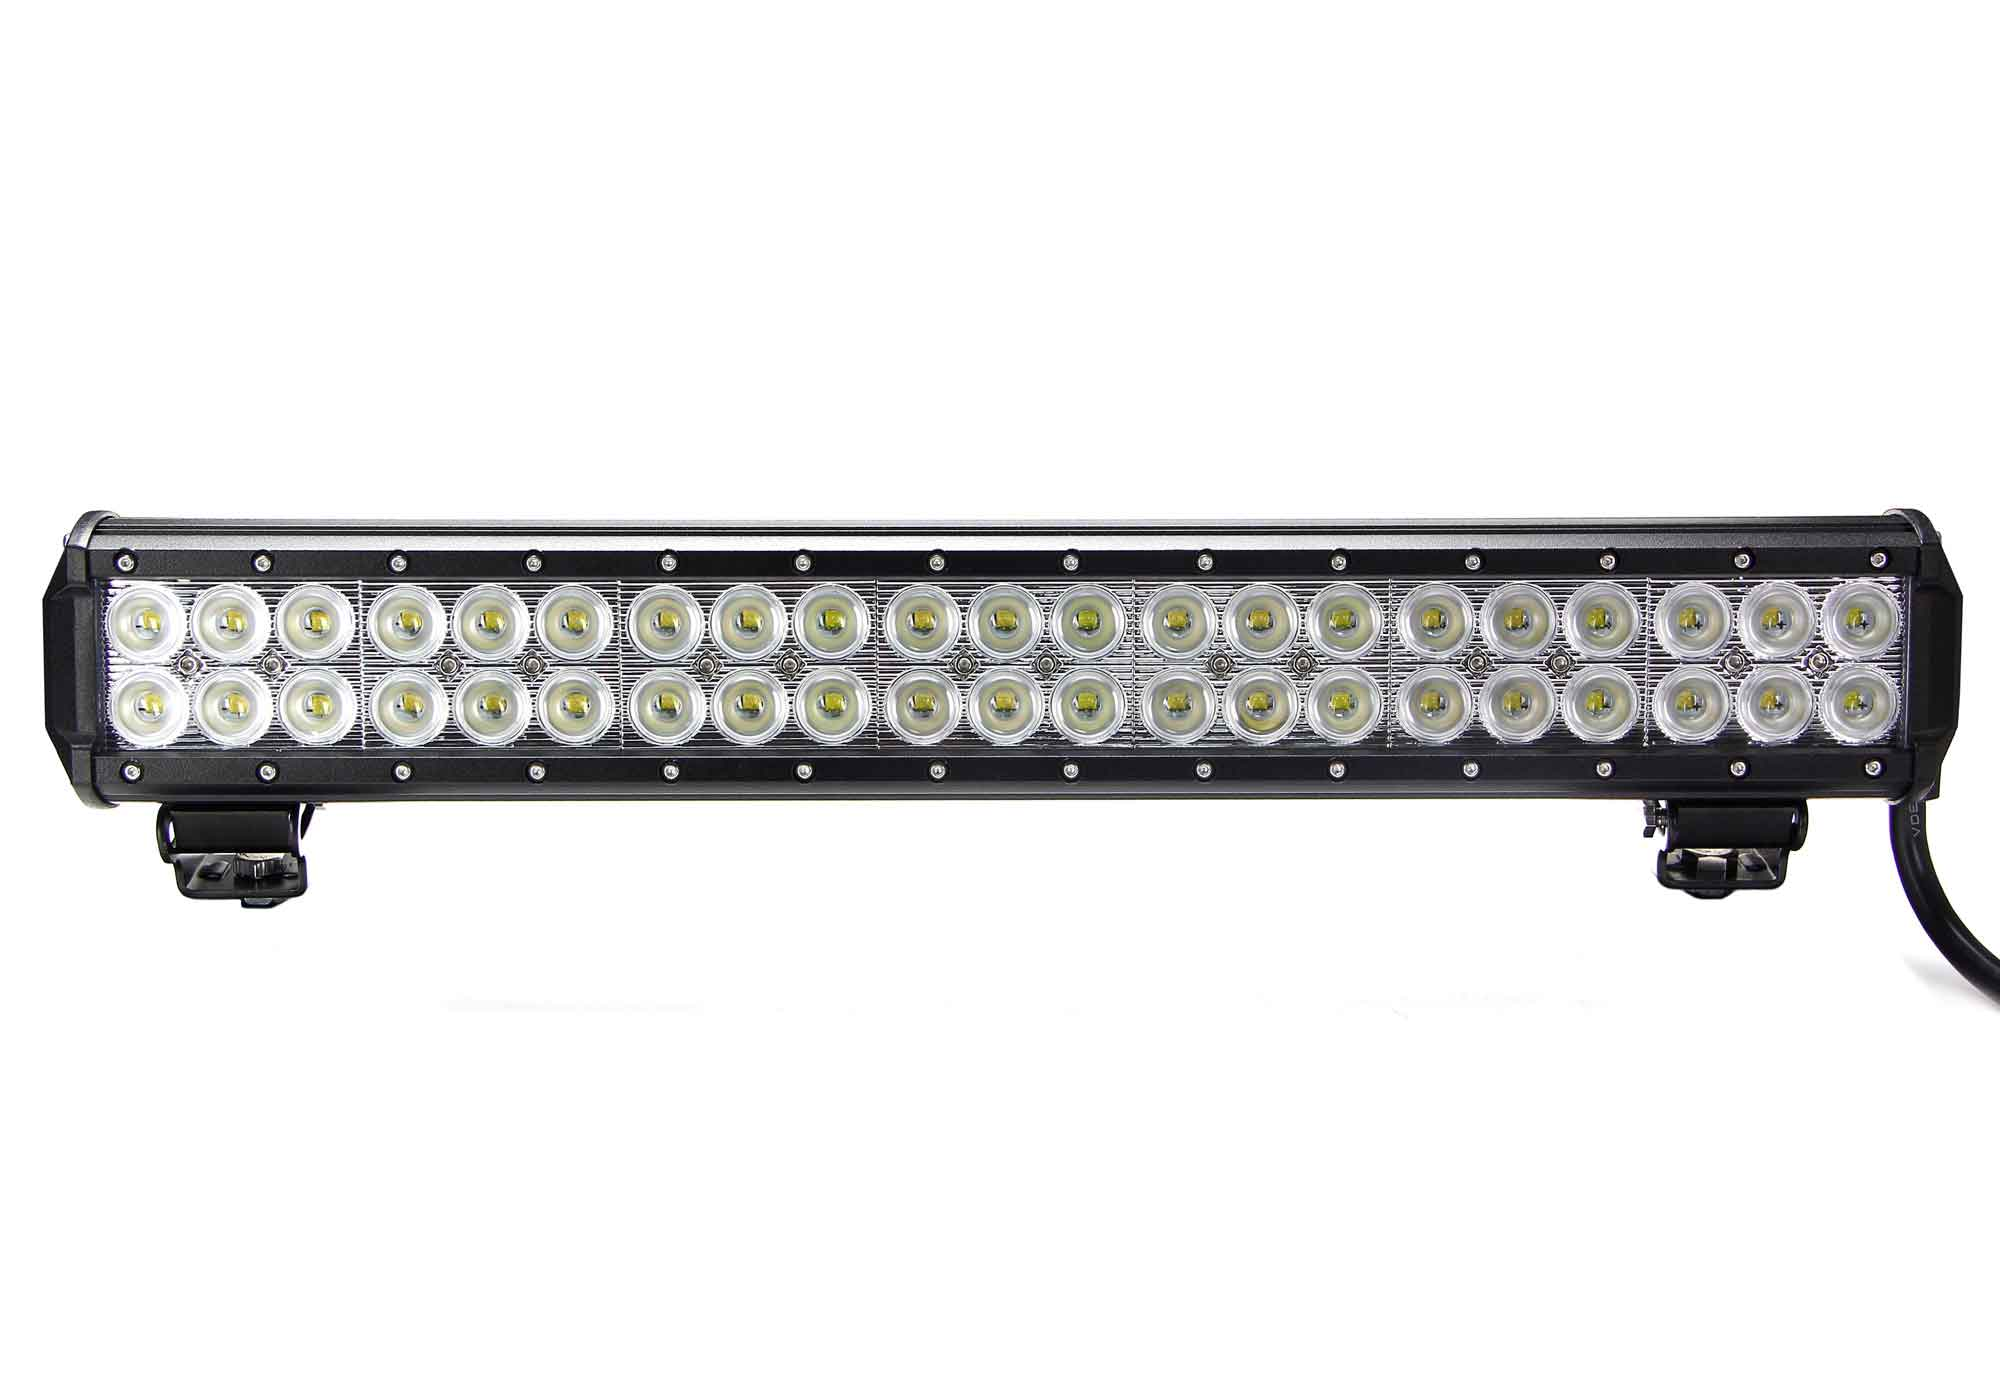 vortex series led light bar 20 inch 126 watt combo tuff led lights. Black Bedroom Furniture Sets. Home Design Ideas